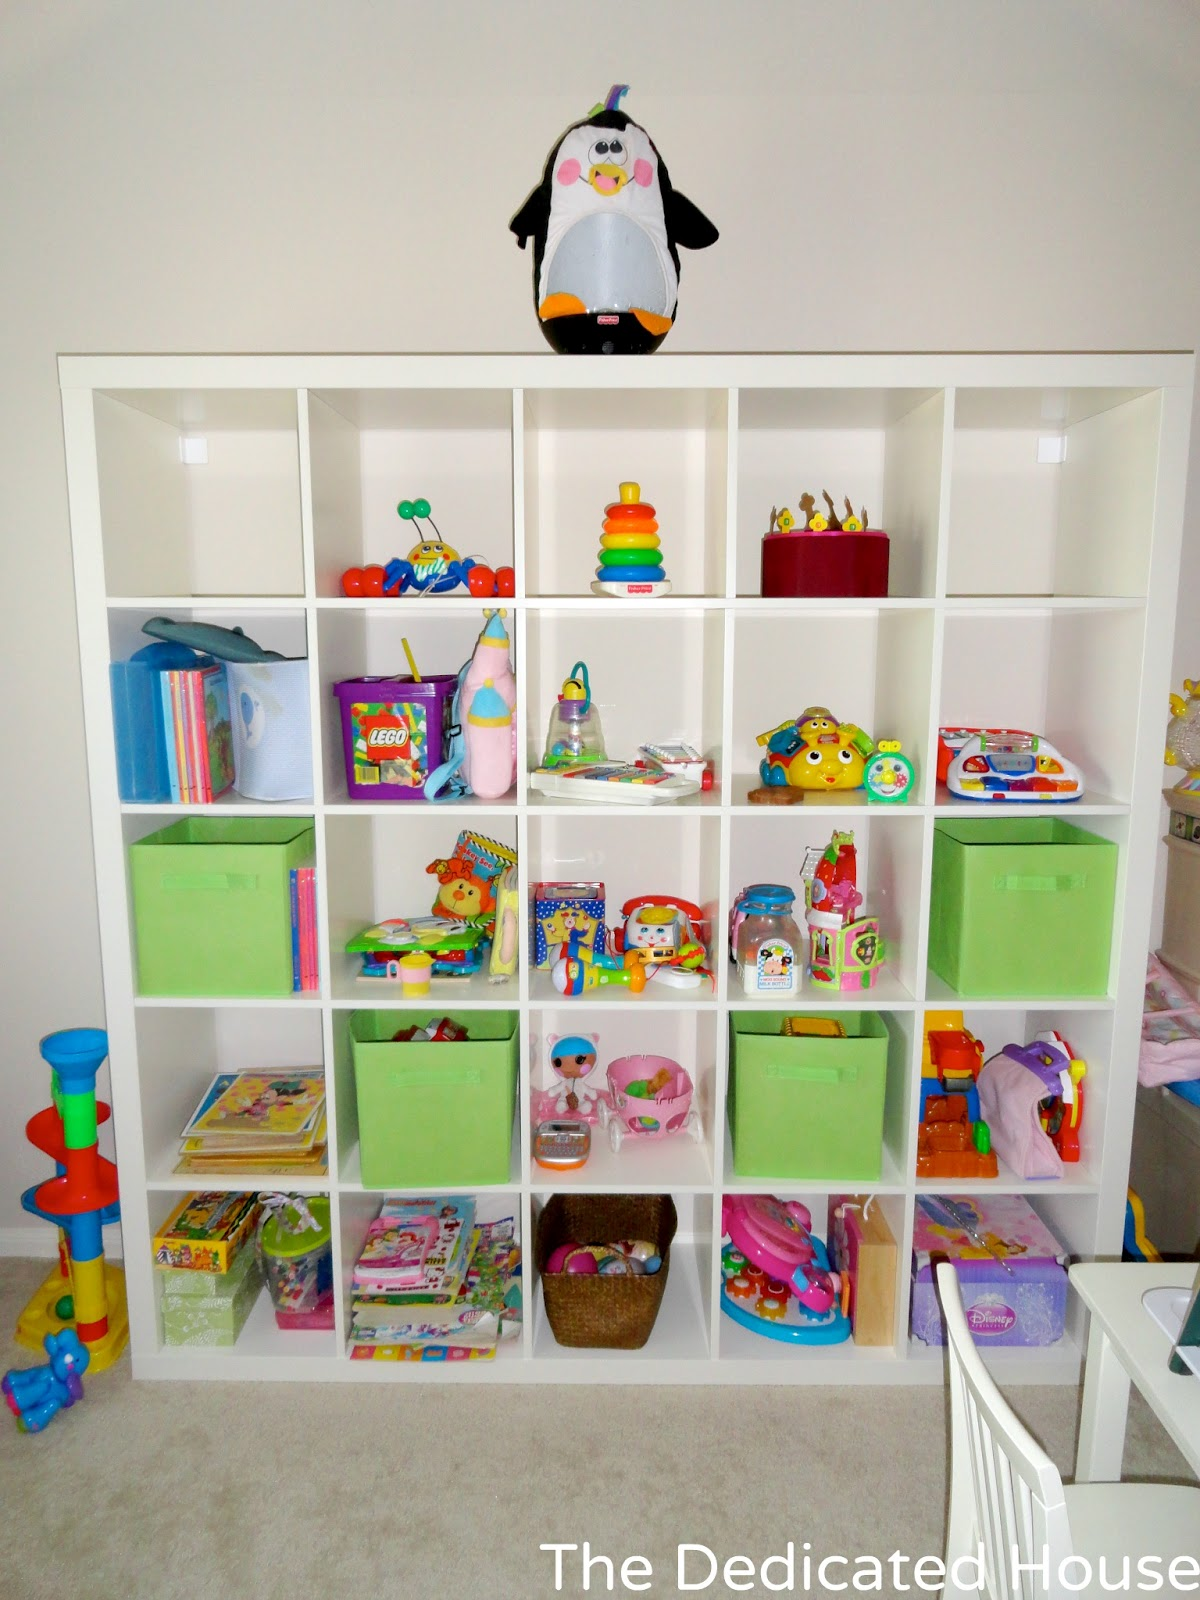 IKEA Furniture Kids Rooms Storage 1200 x 1600